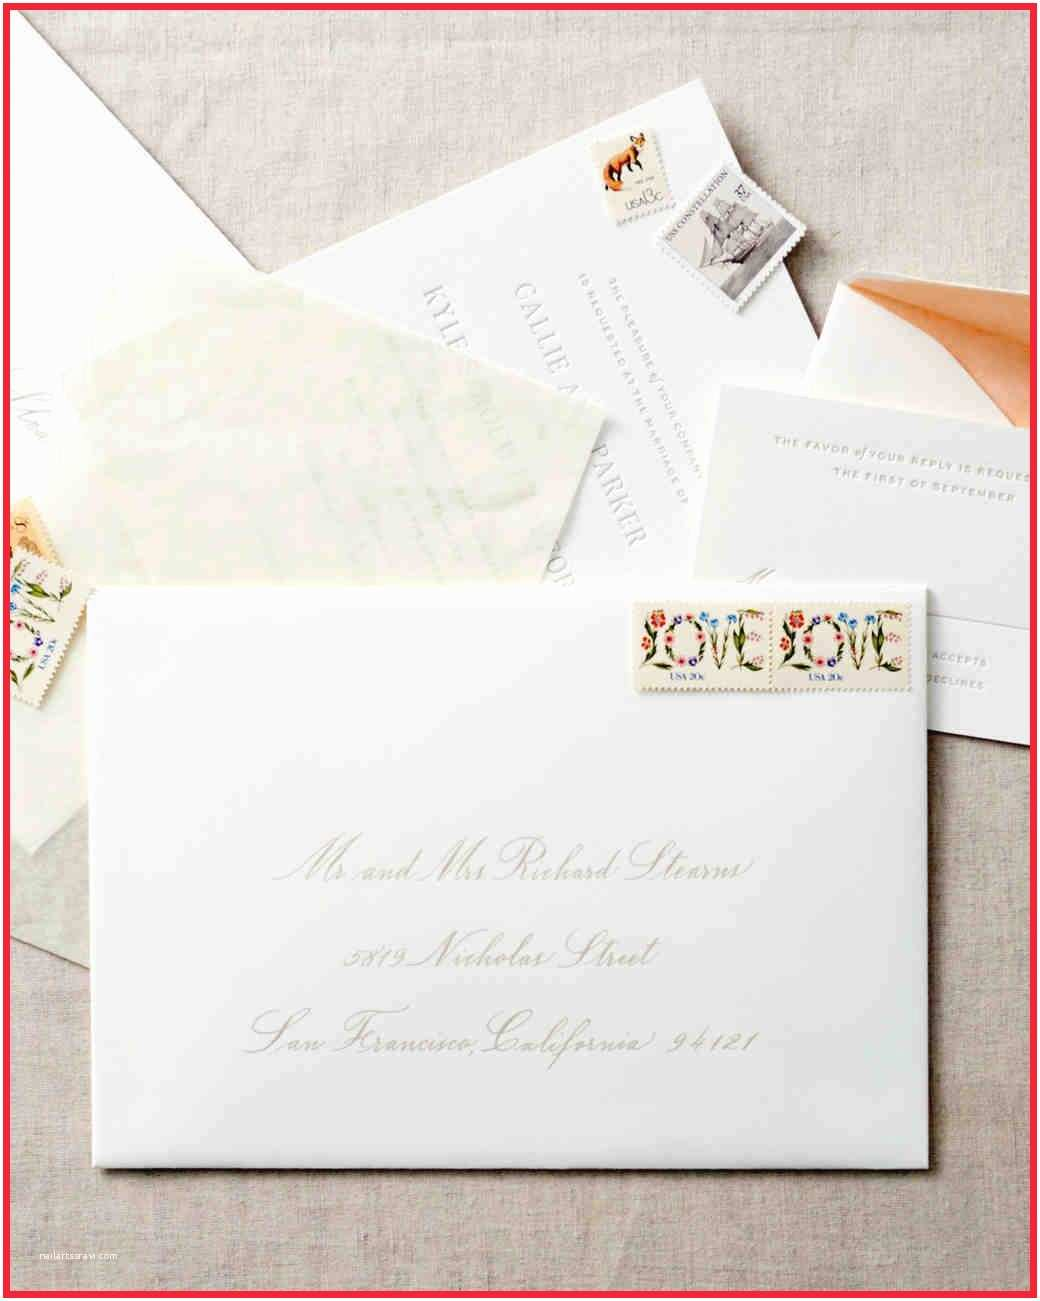 Fancy Address Labels for Wedding Invitations Luxury Wedding Invitation Address Labels S Wedding